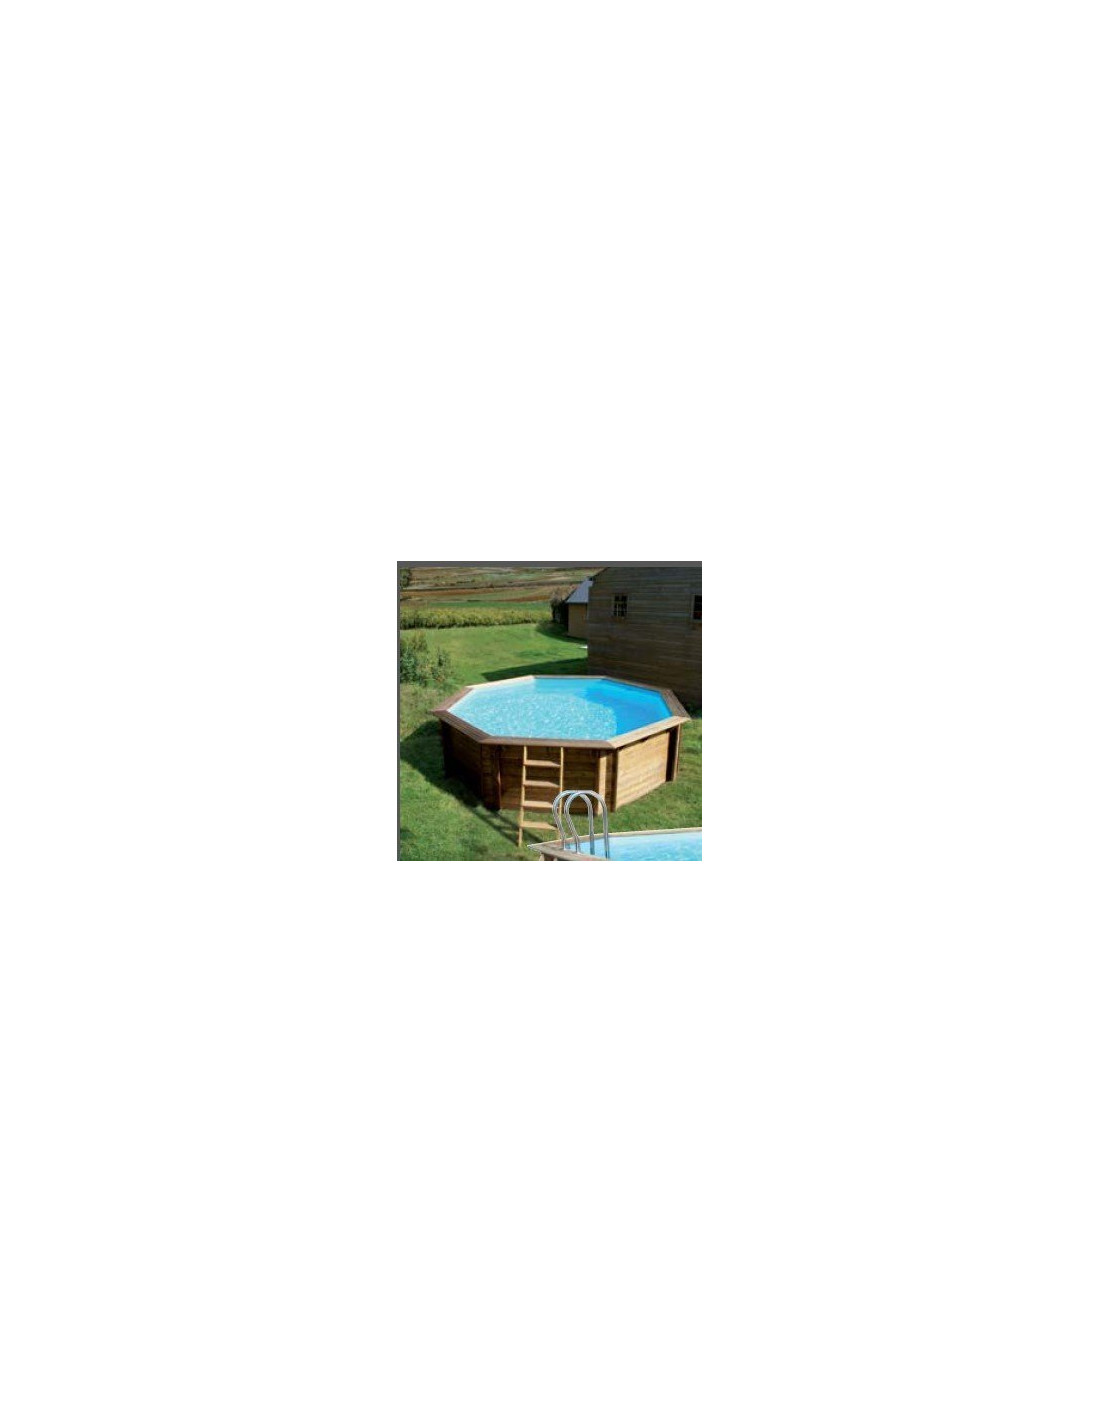 Piscine weva bois 5 28m x 1 33m home piscine for Piscine en kit bois hors sol